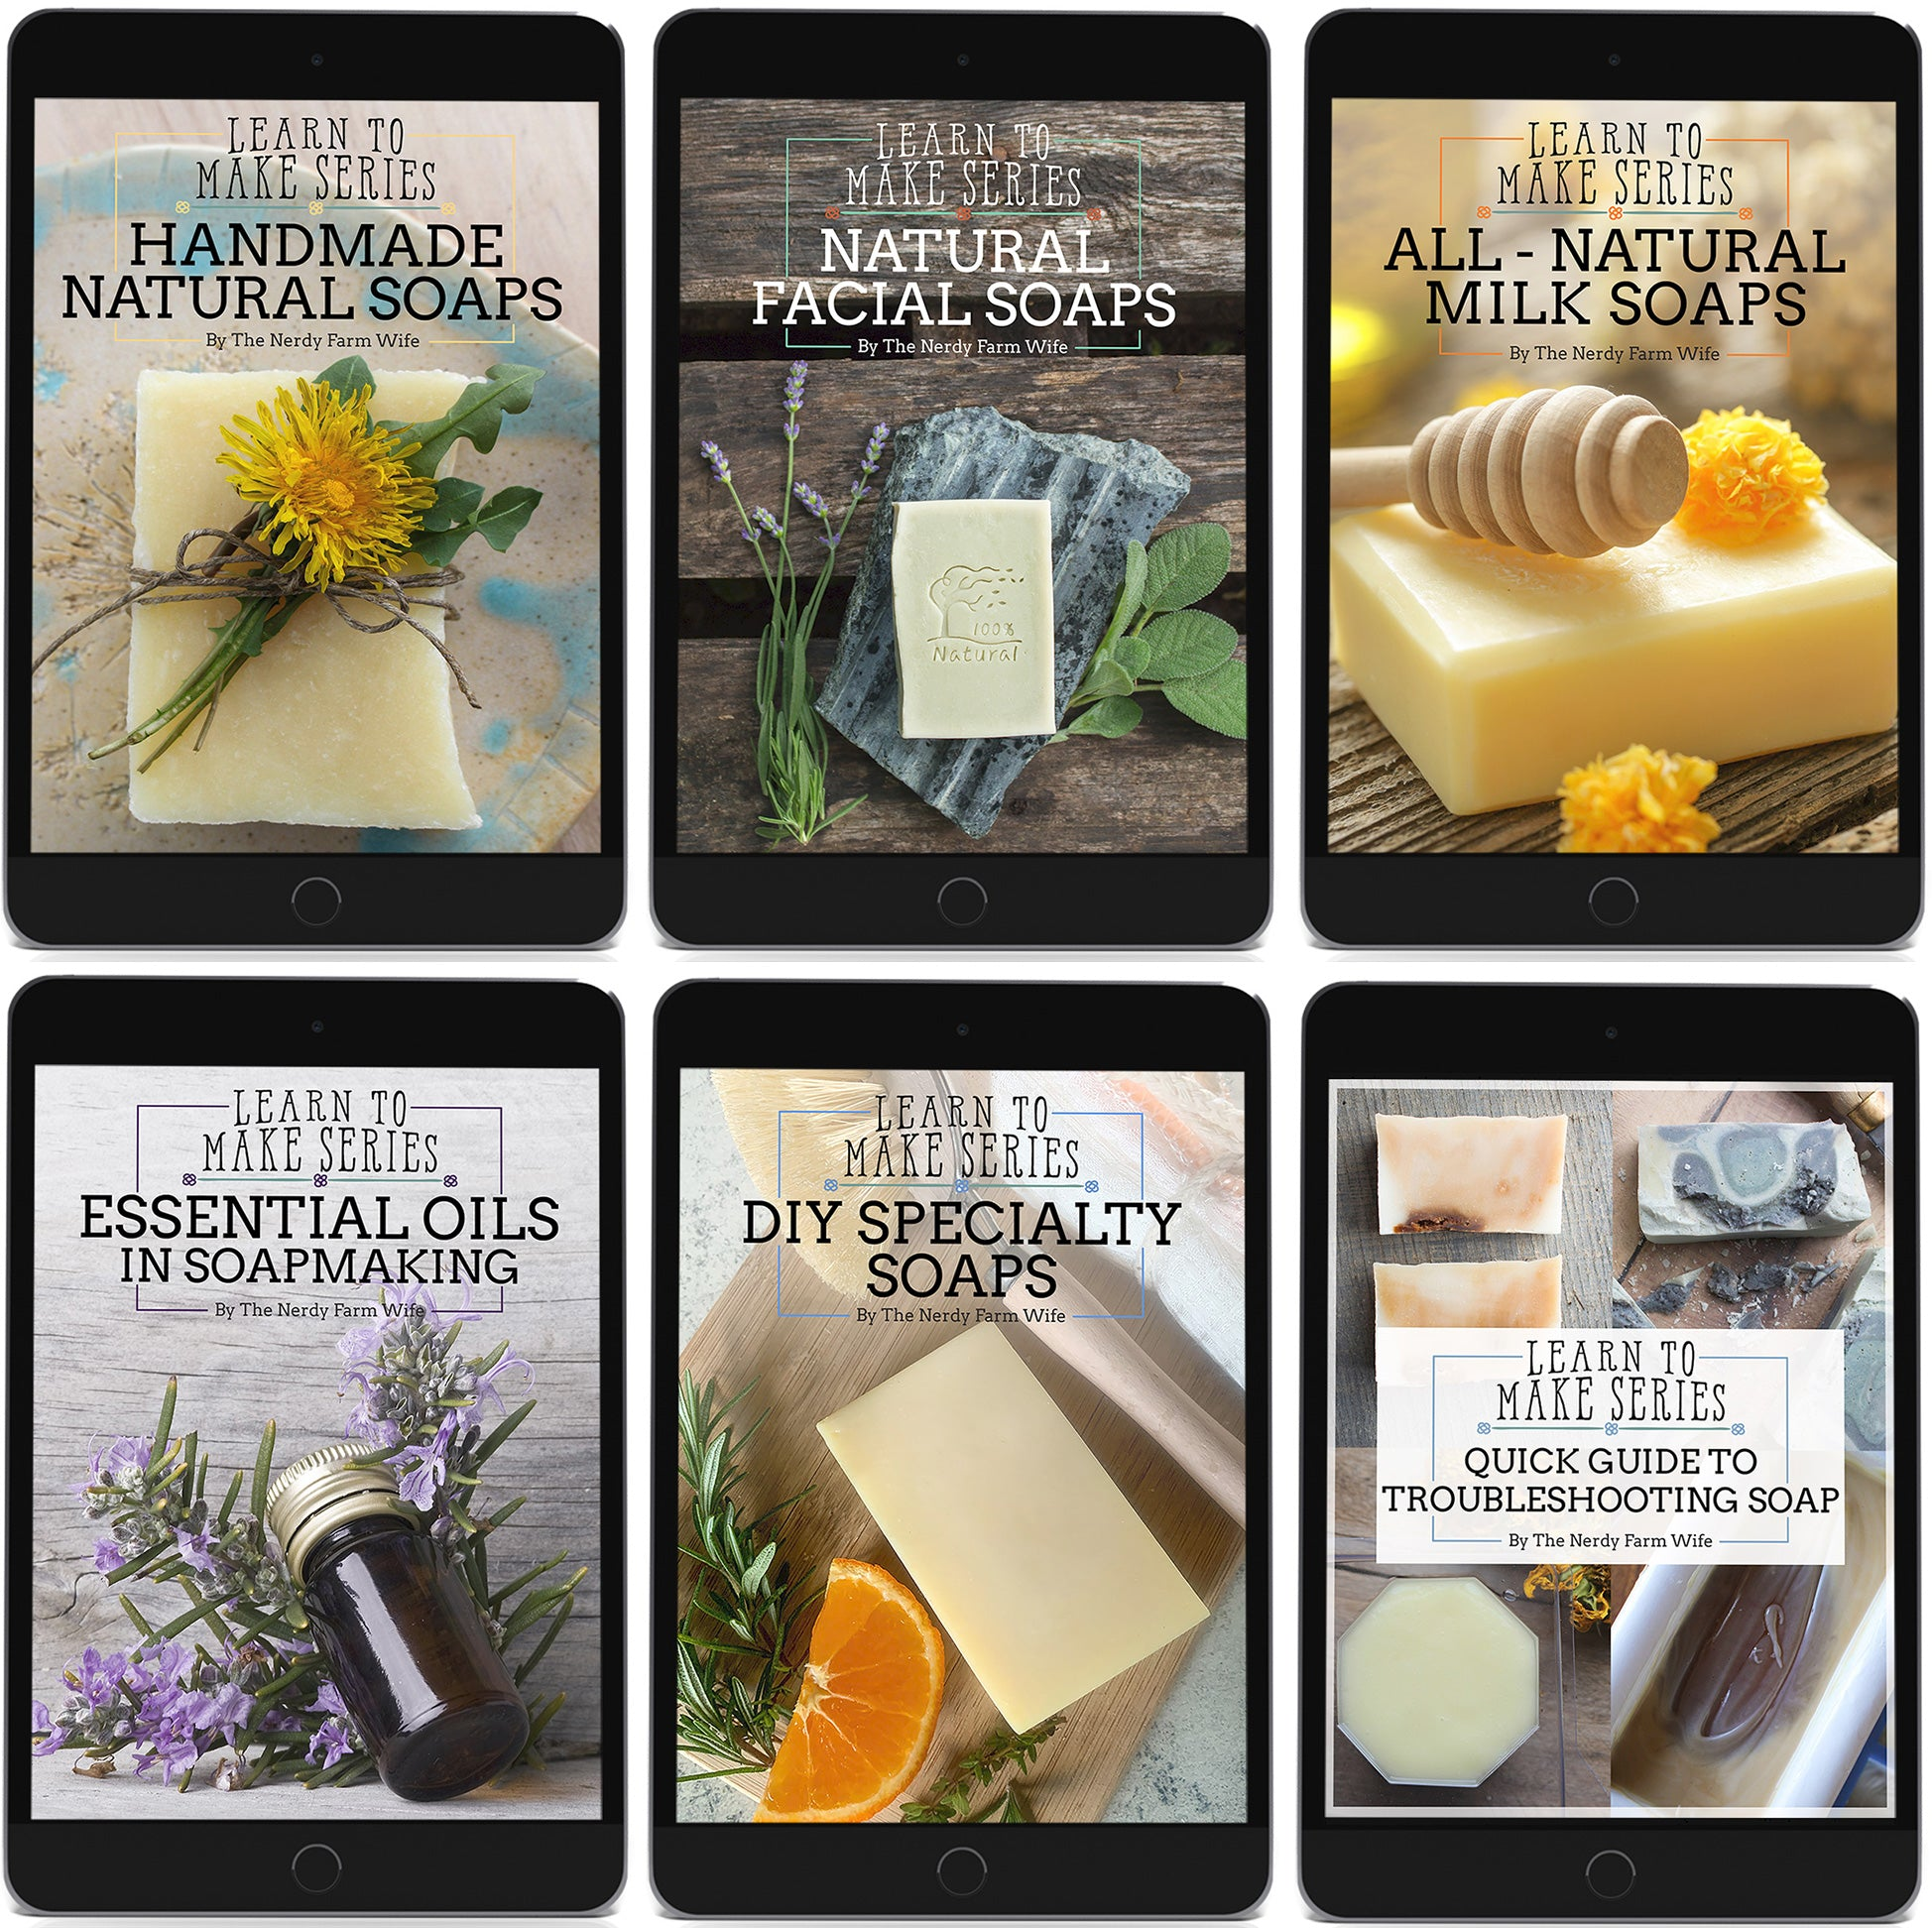 Handmade Natural Soaps Complete eBook Collection - Digital